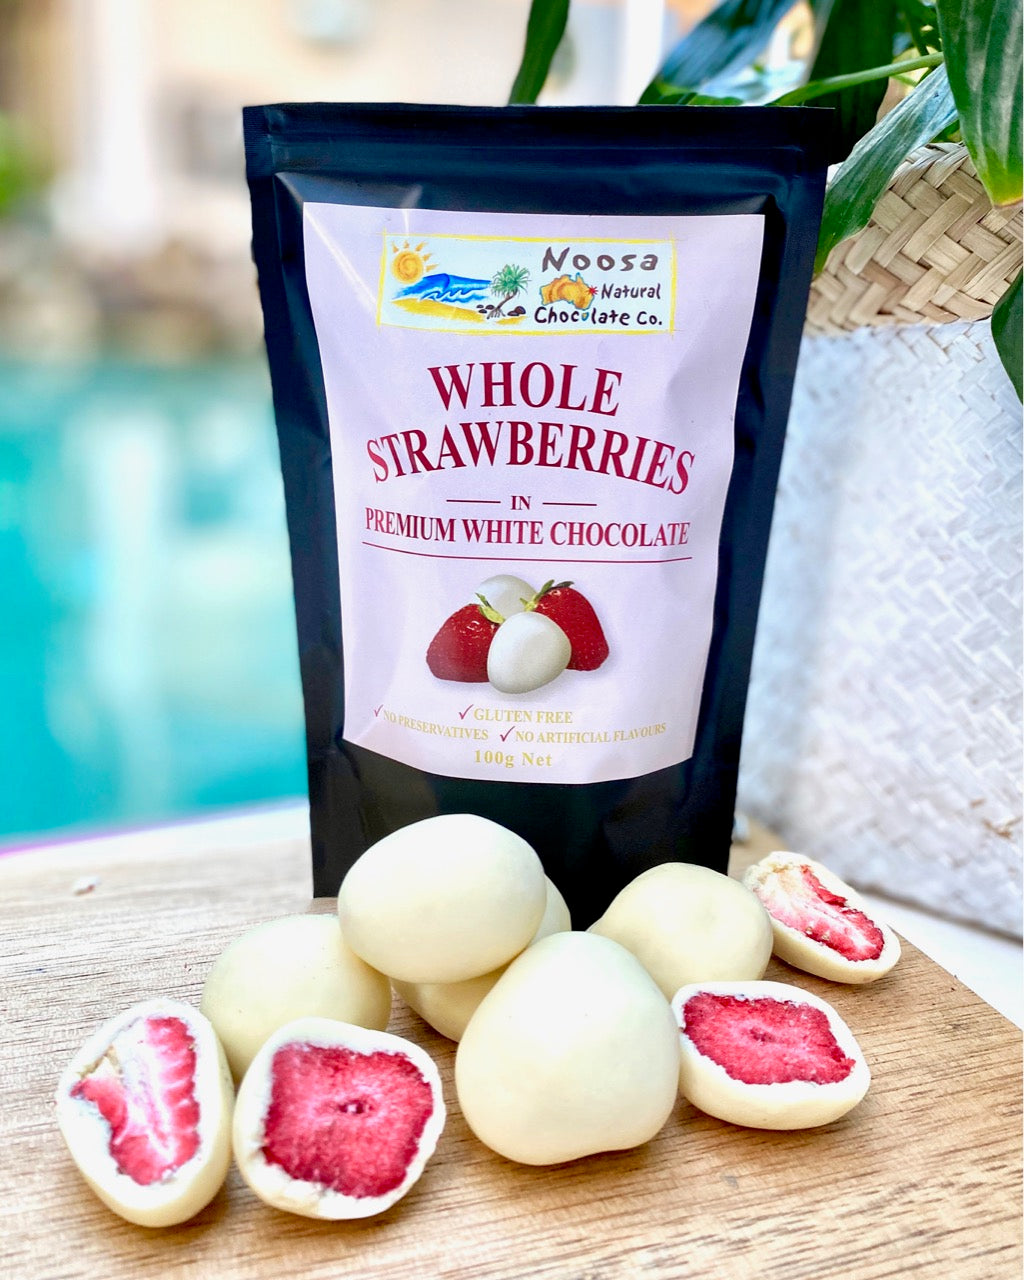 Australian Grown Strawberries Coated in Premium White Chocolate